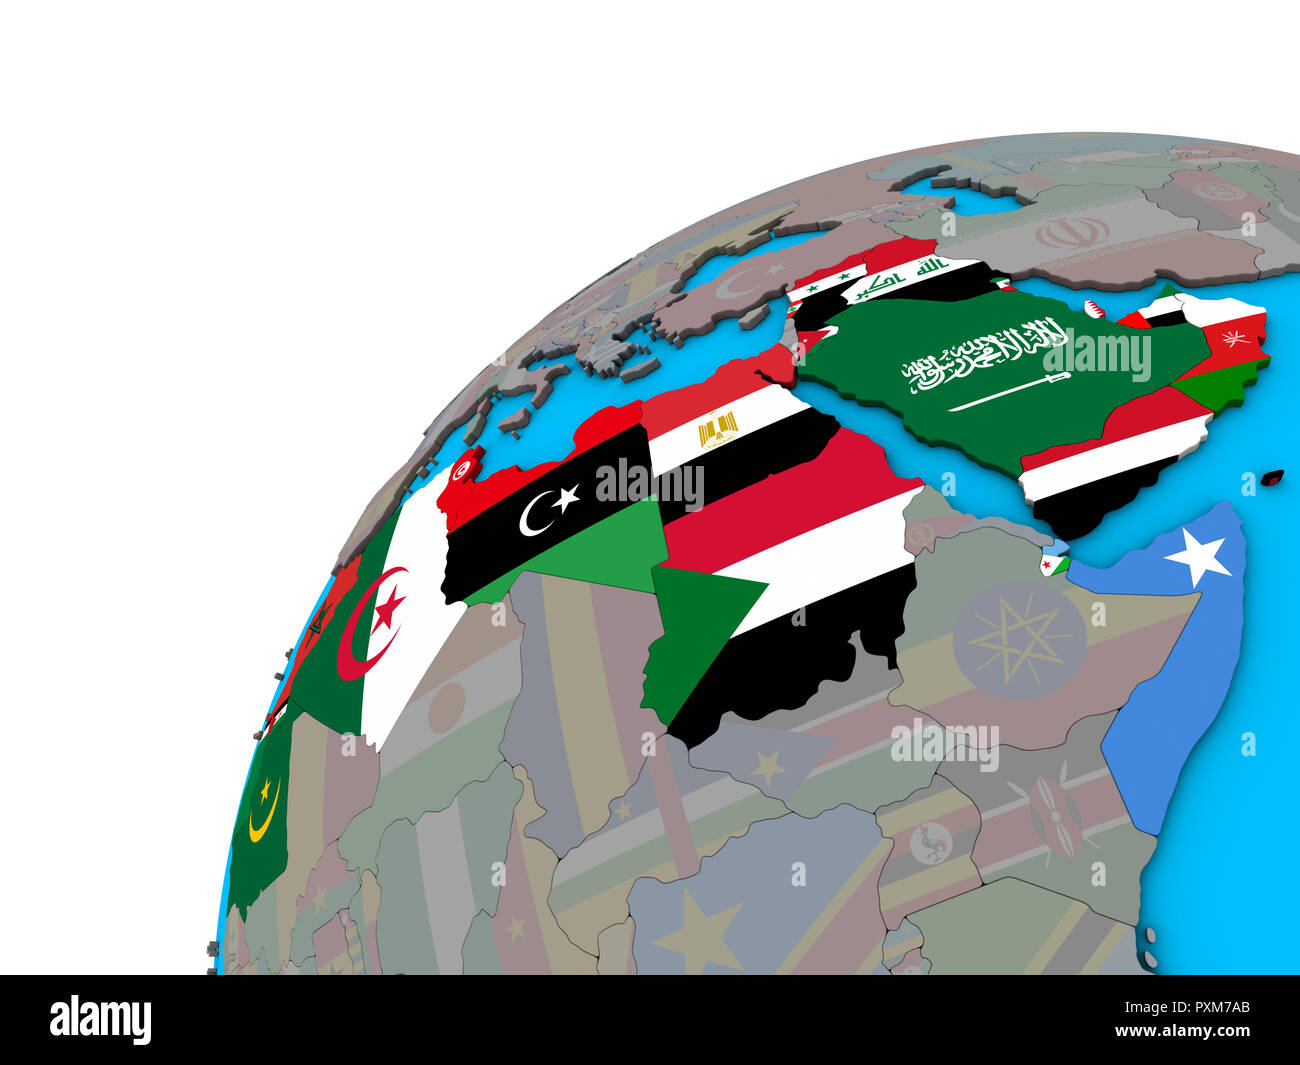 Picture of: Arab League With National Flags On 3d Globe 3d Illustration Stock Photo Alamy